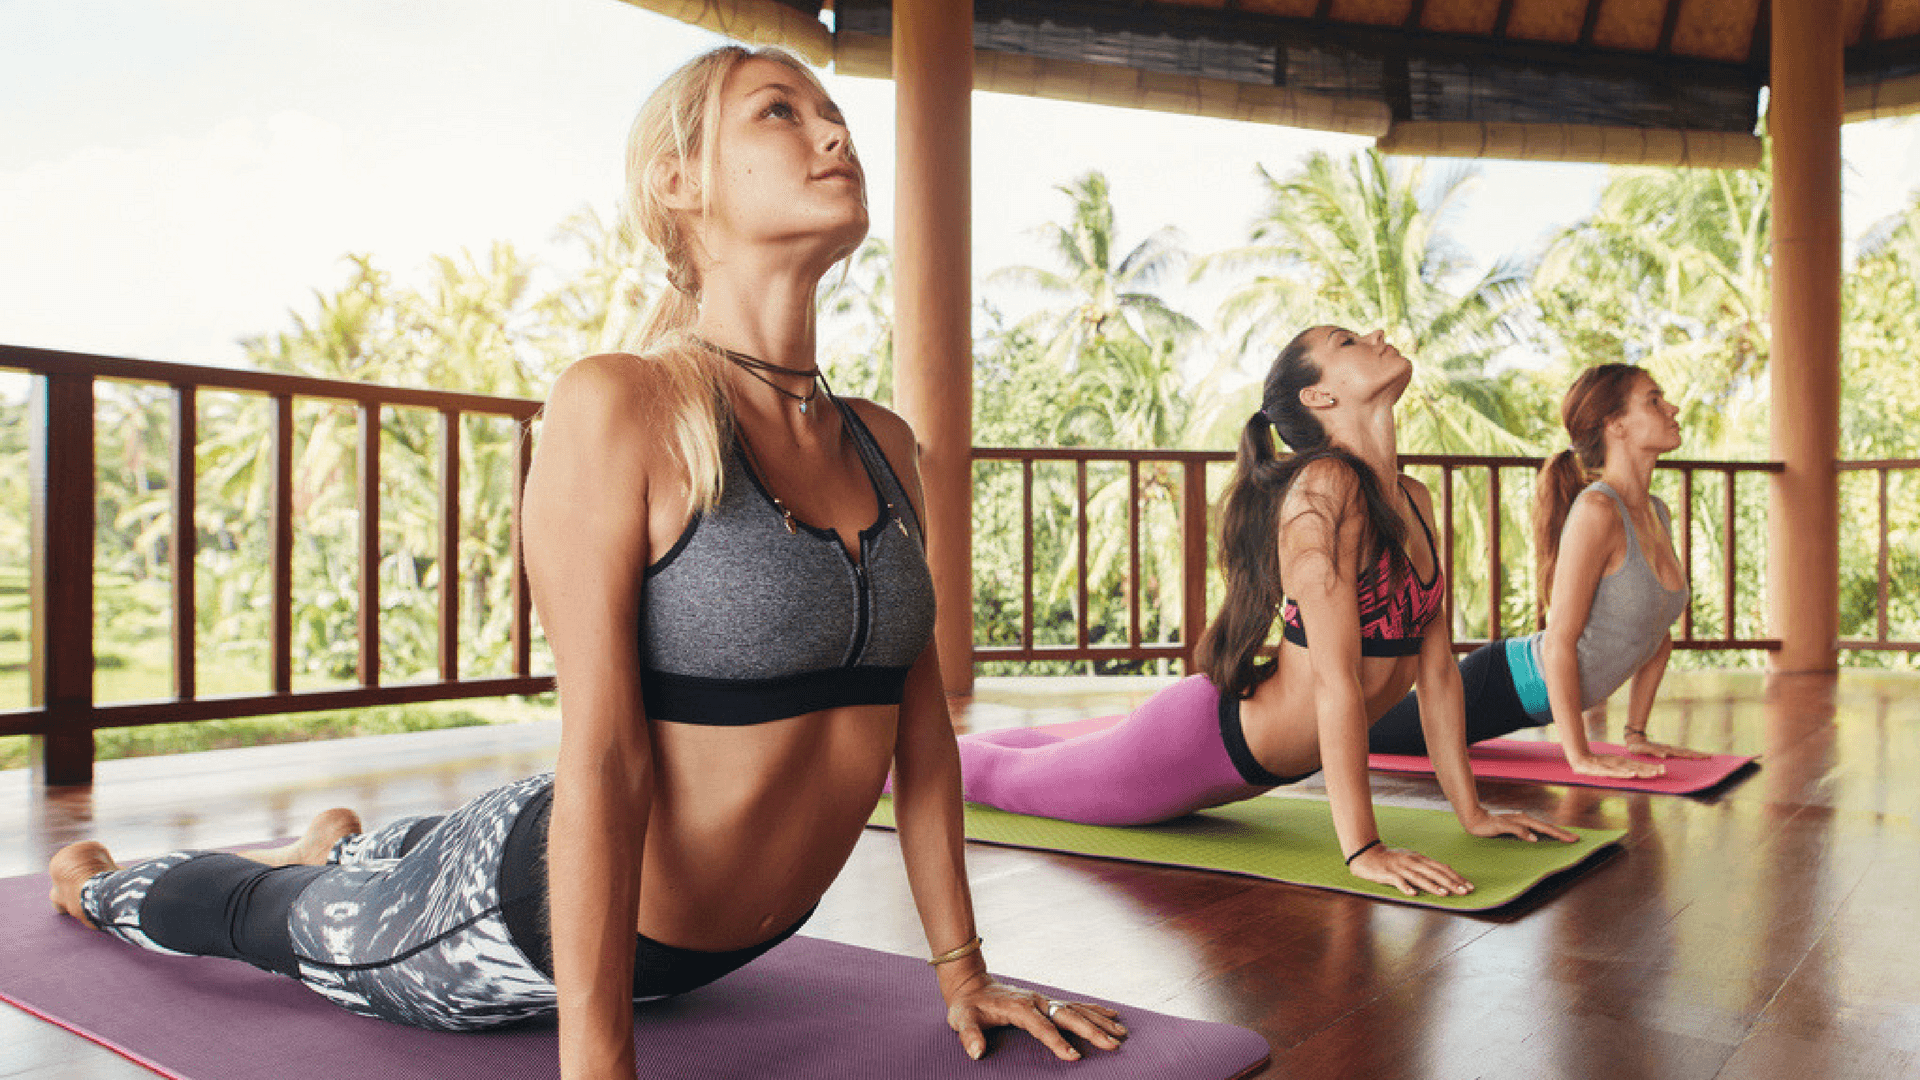 Which is the best yoga style for your goals?